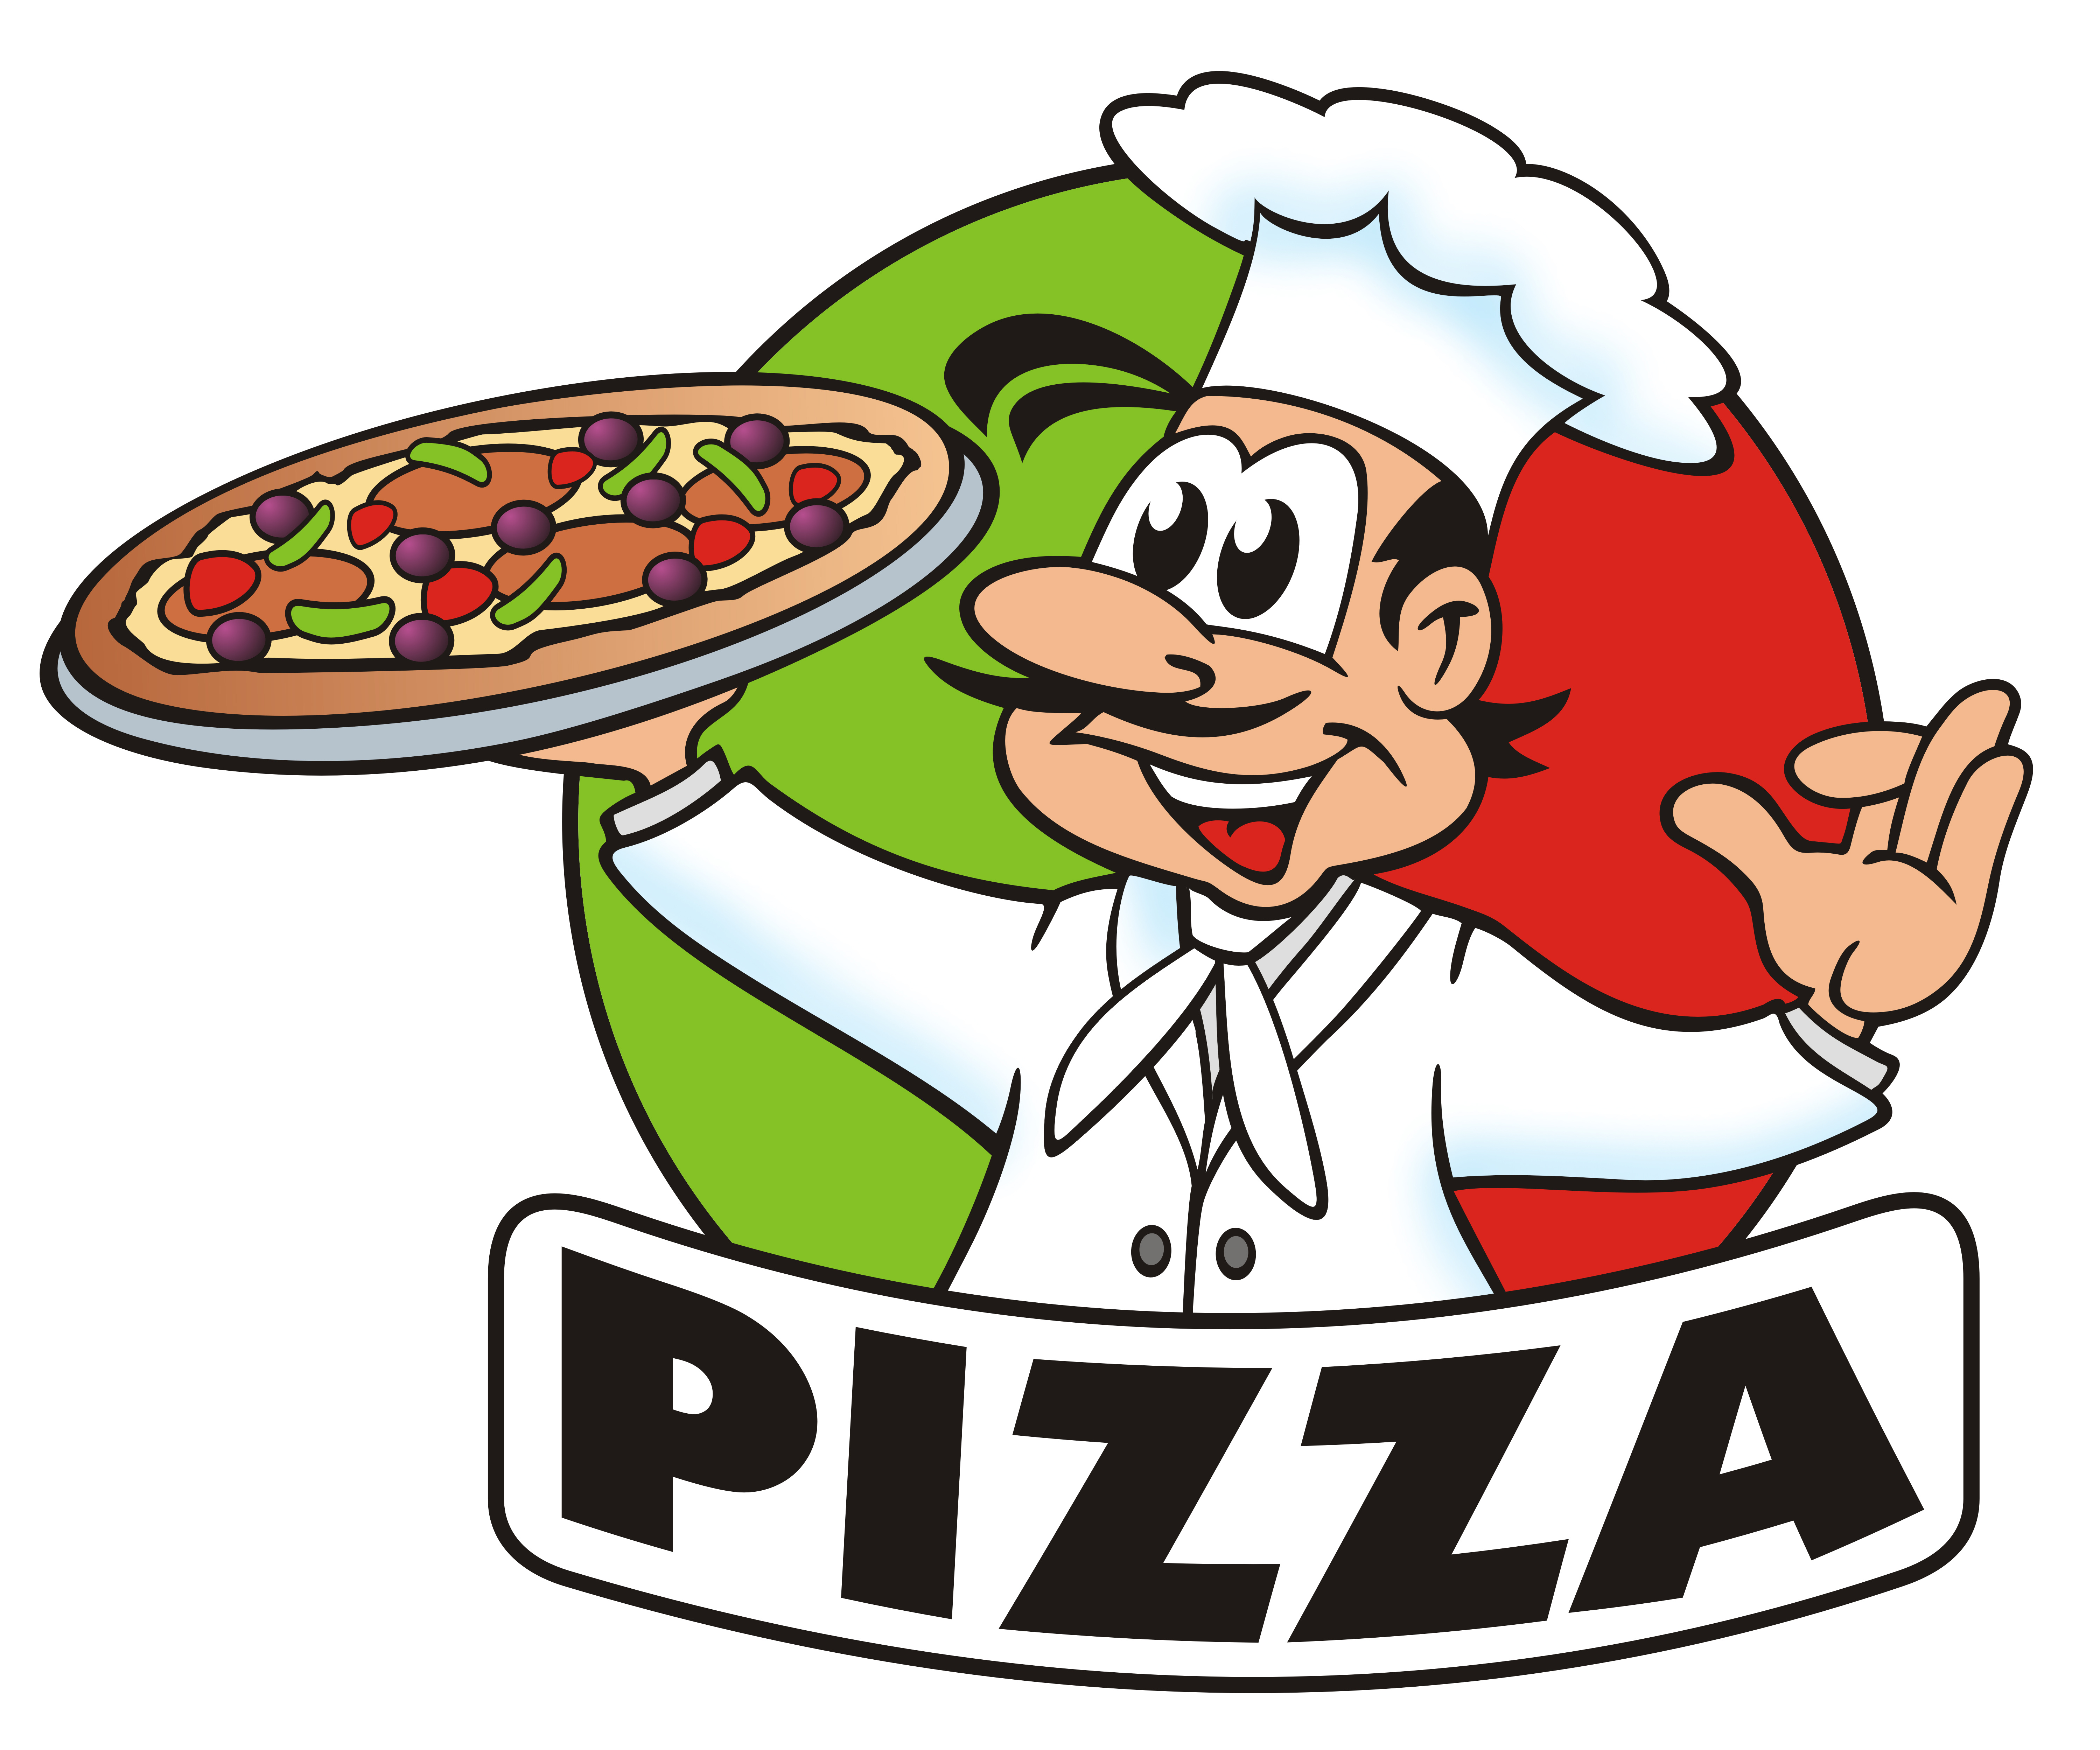 Pizza pasta and. Salad clipart free download